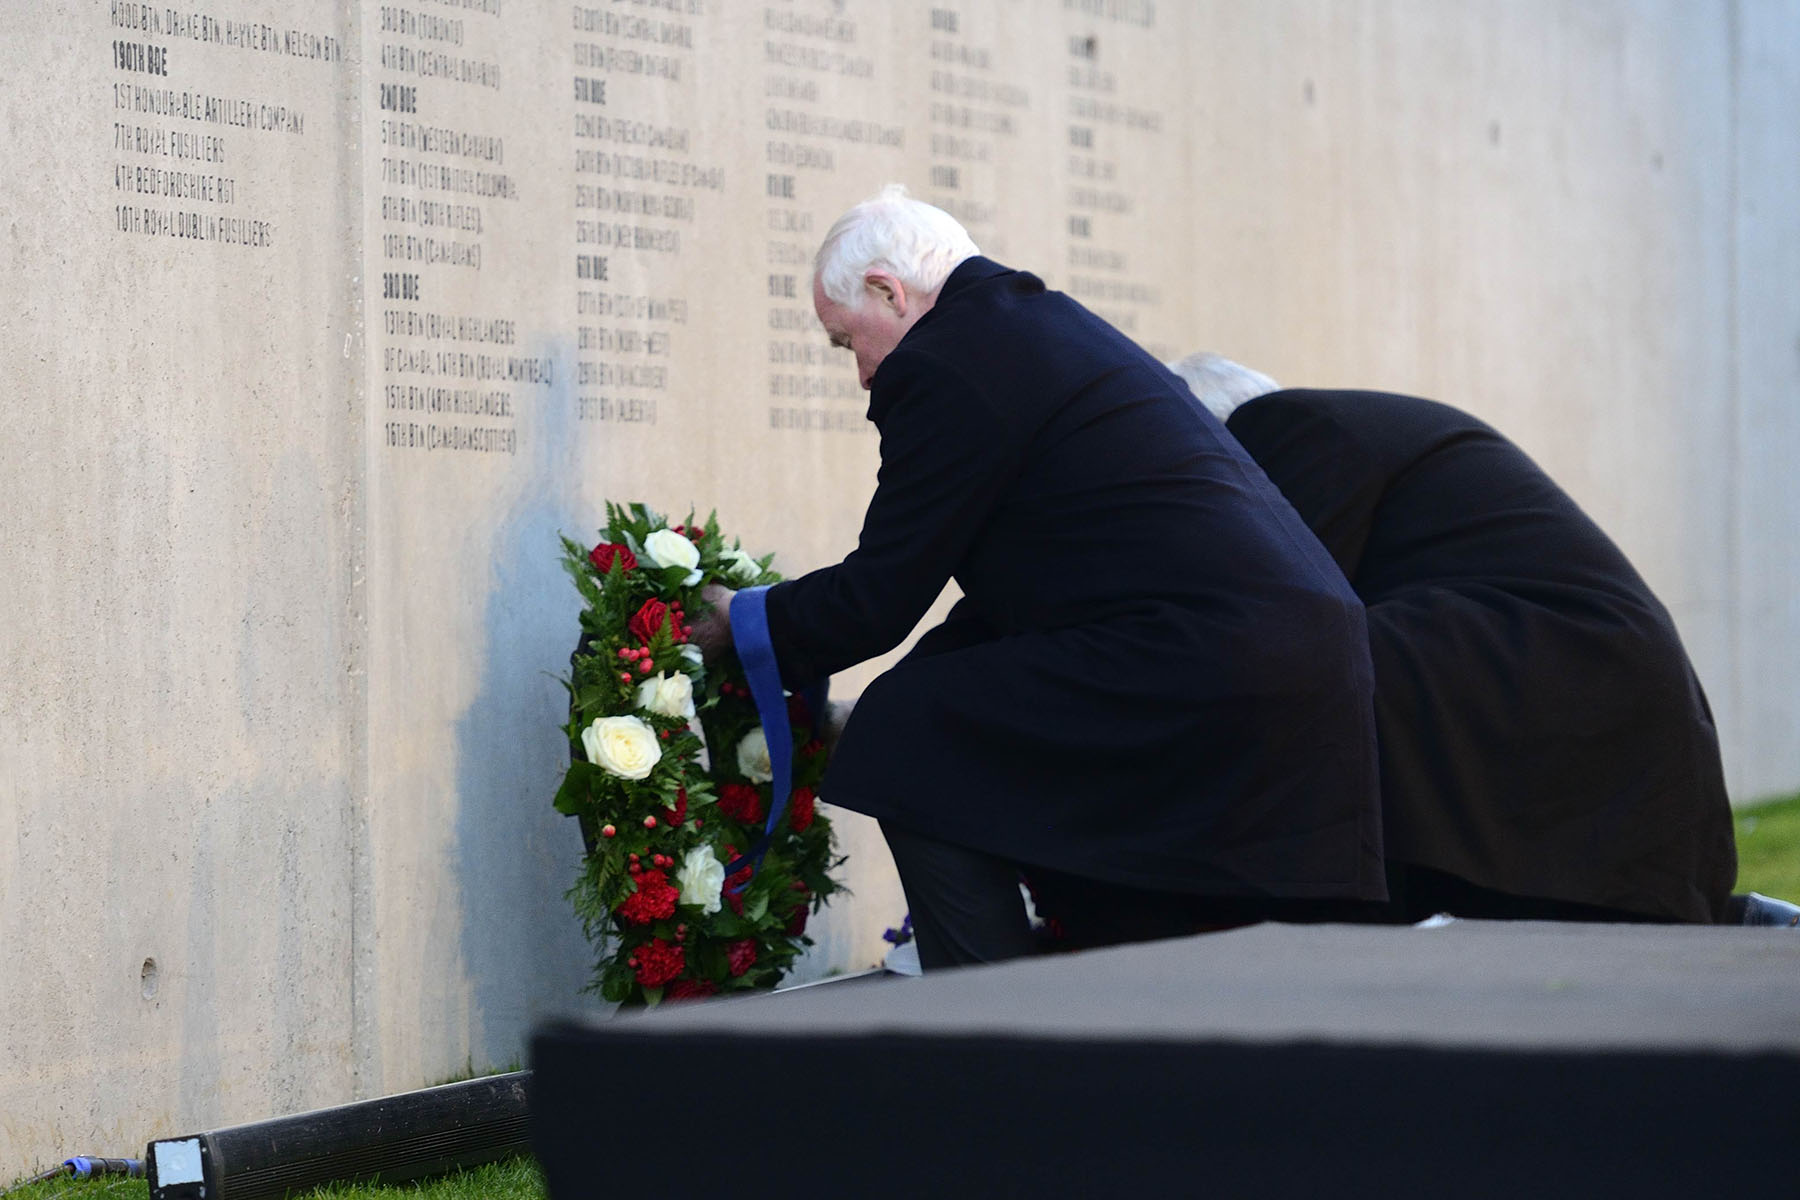 As commander-in-chief of Canada, the Governor General laid a wreath on behalf of the people of Canada in memory of the Canadian soldiers who lost their lives in this battle.